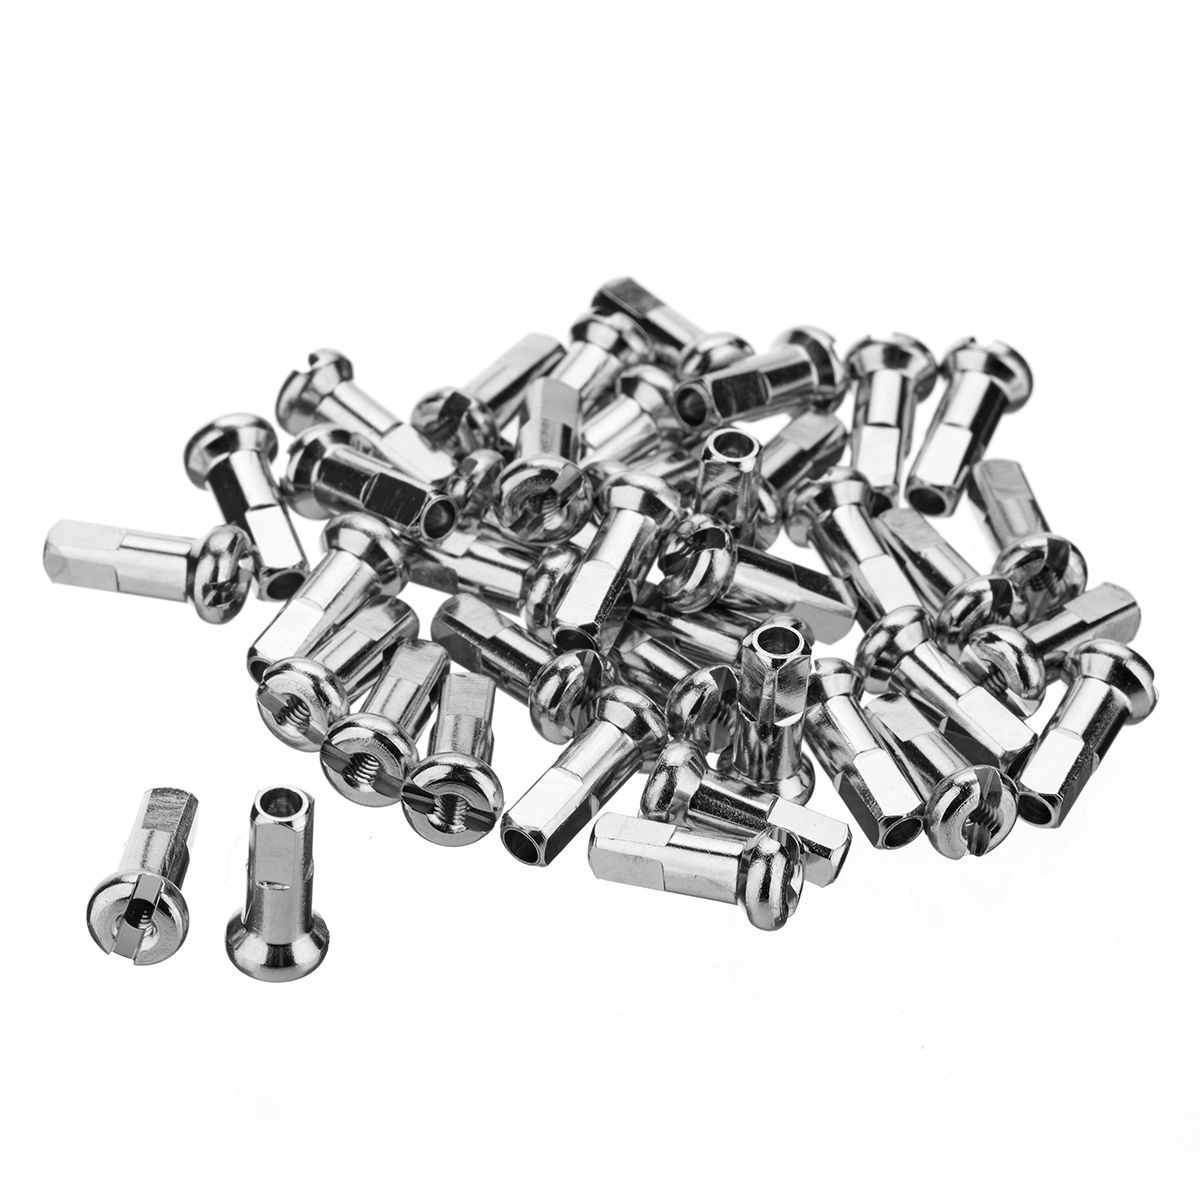 Brass Spoke Nipples Silver 40 Pack